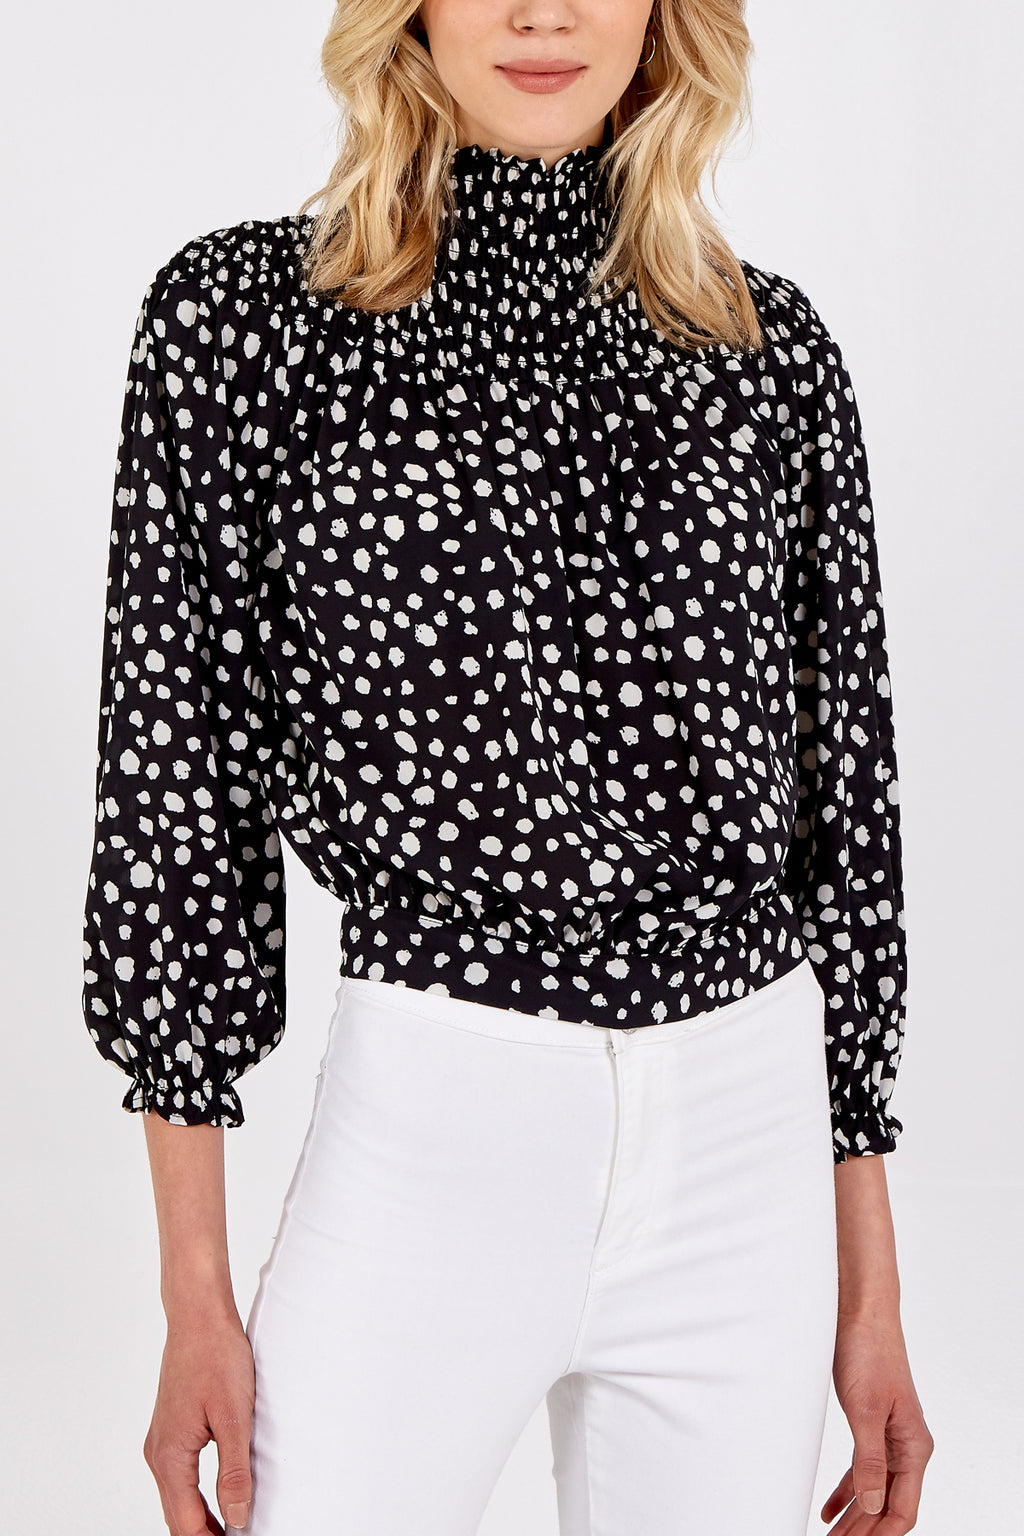 High Neck Long Sleeve Leopard Top With Back Tie